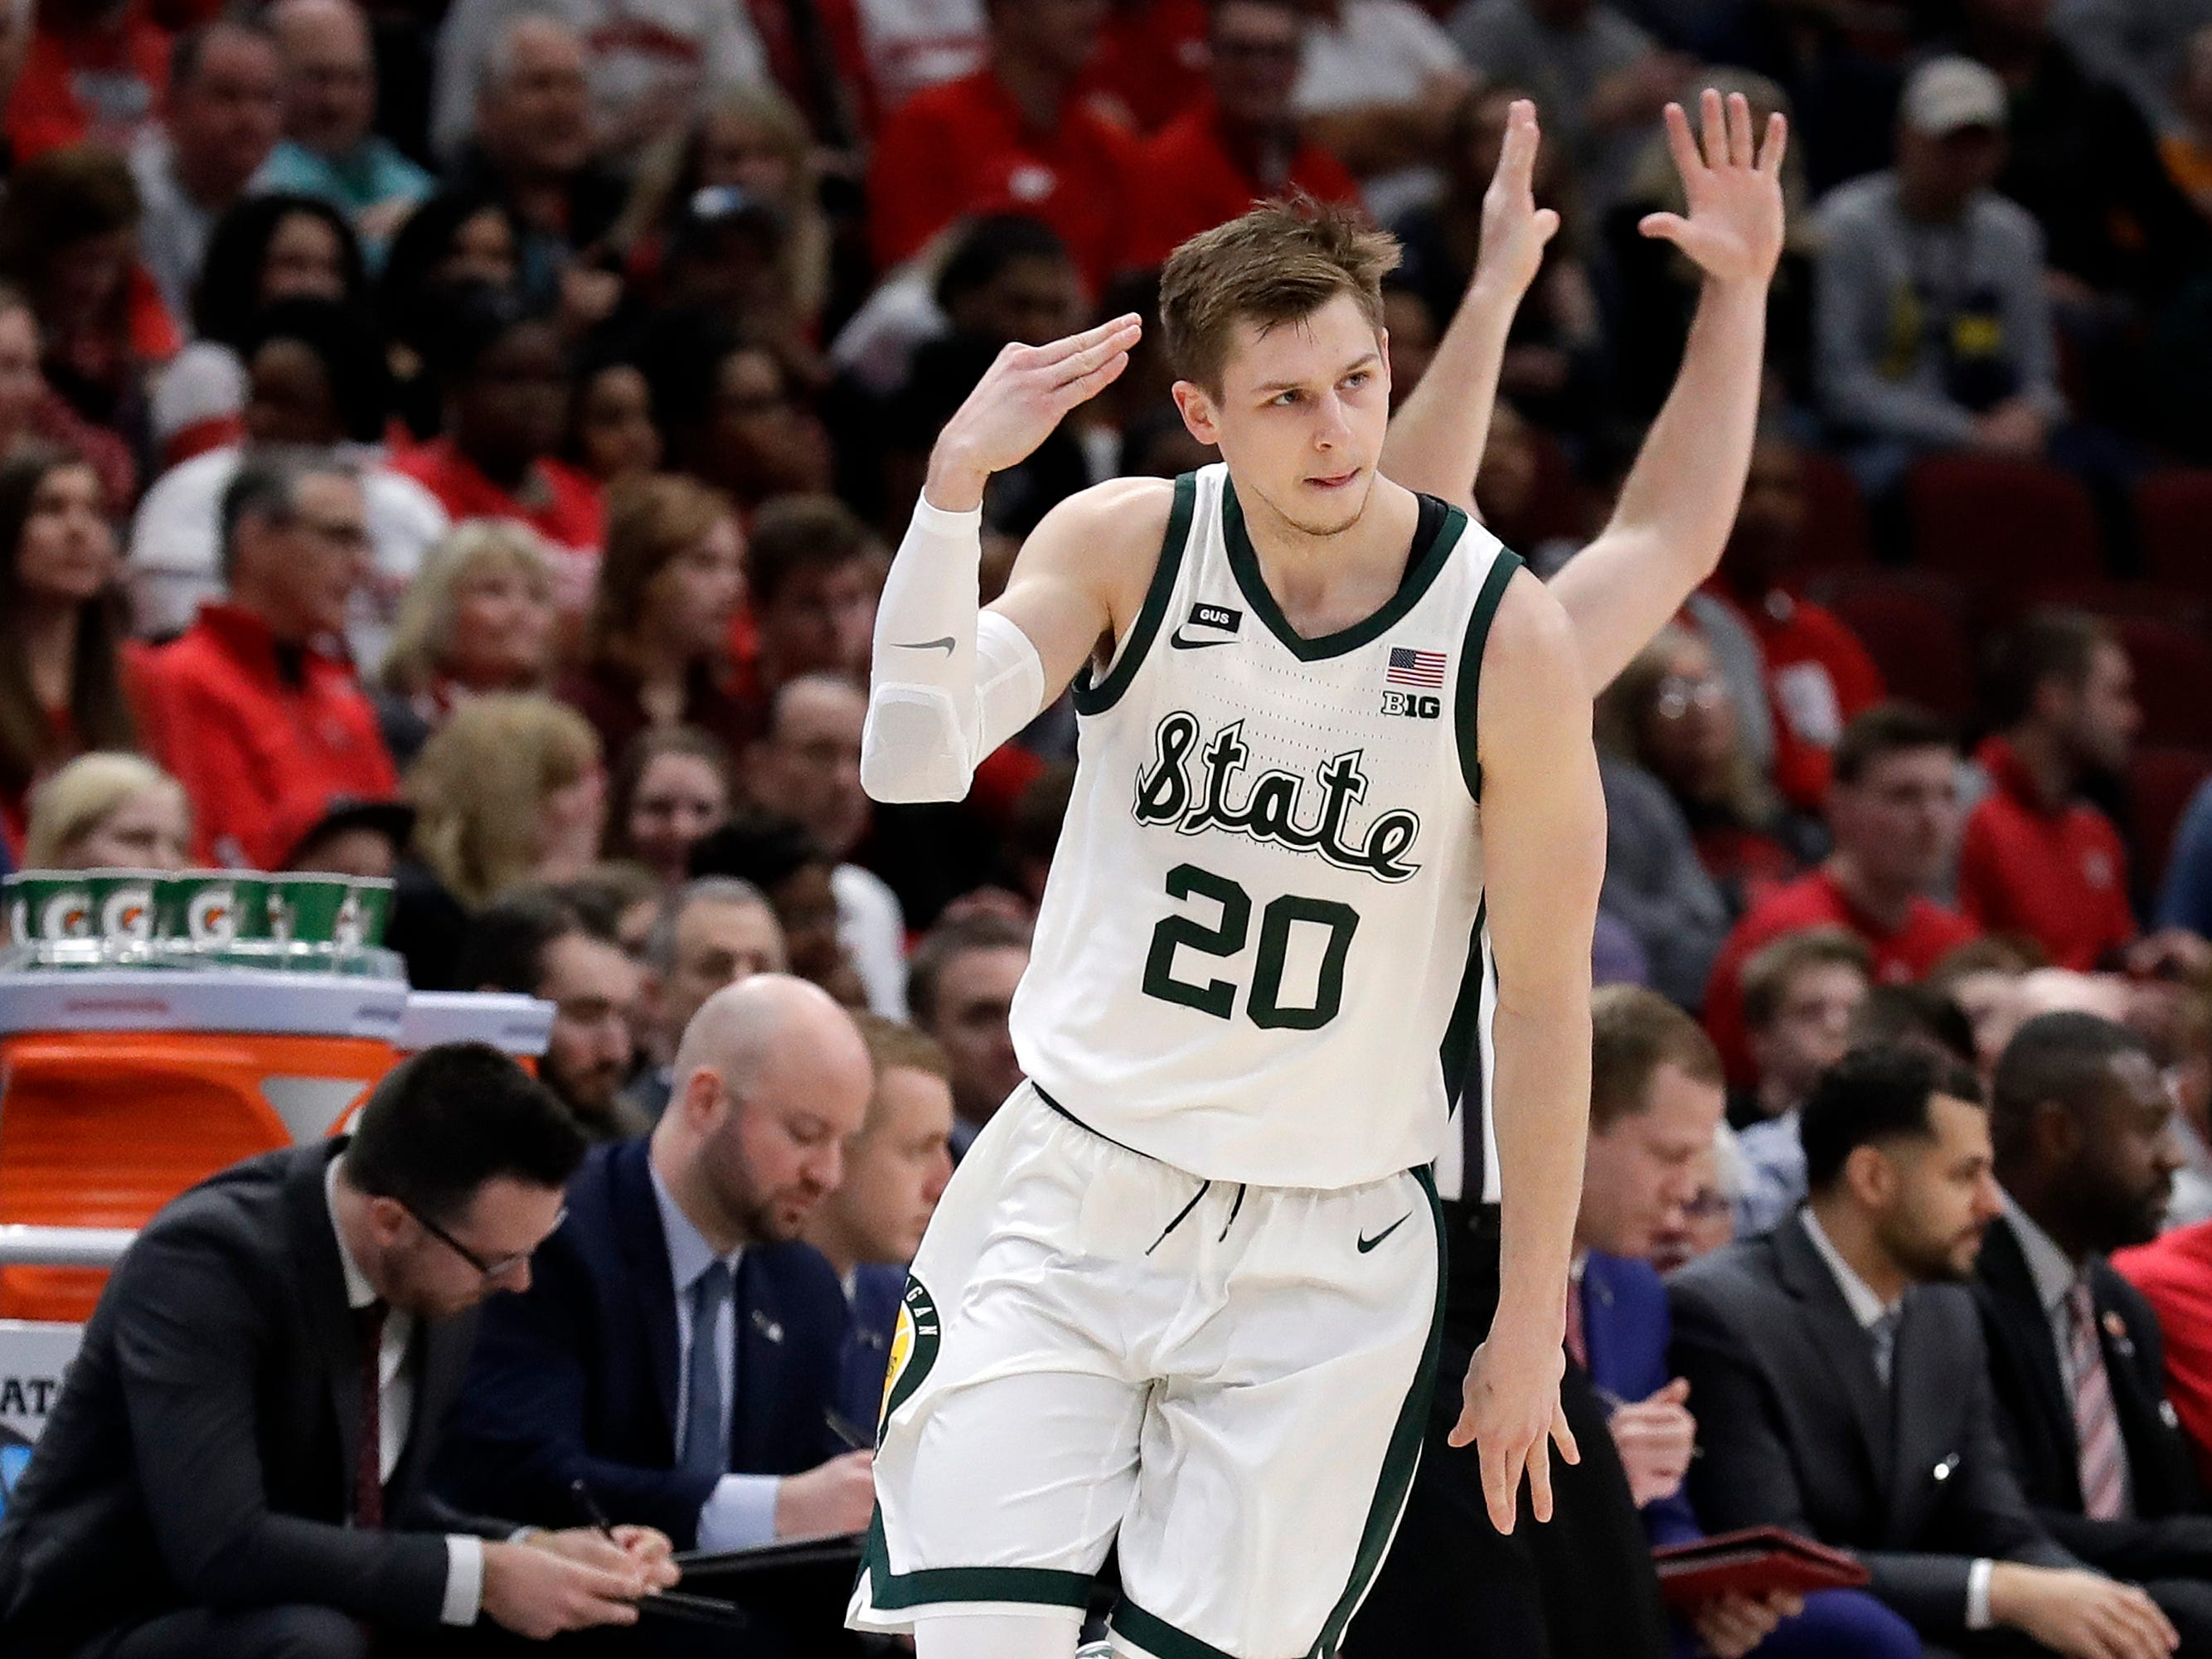 Michigan State's Matt McQuaid reacts after shooting a 3-point basket during the first half.